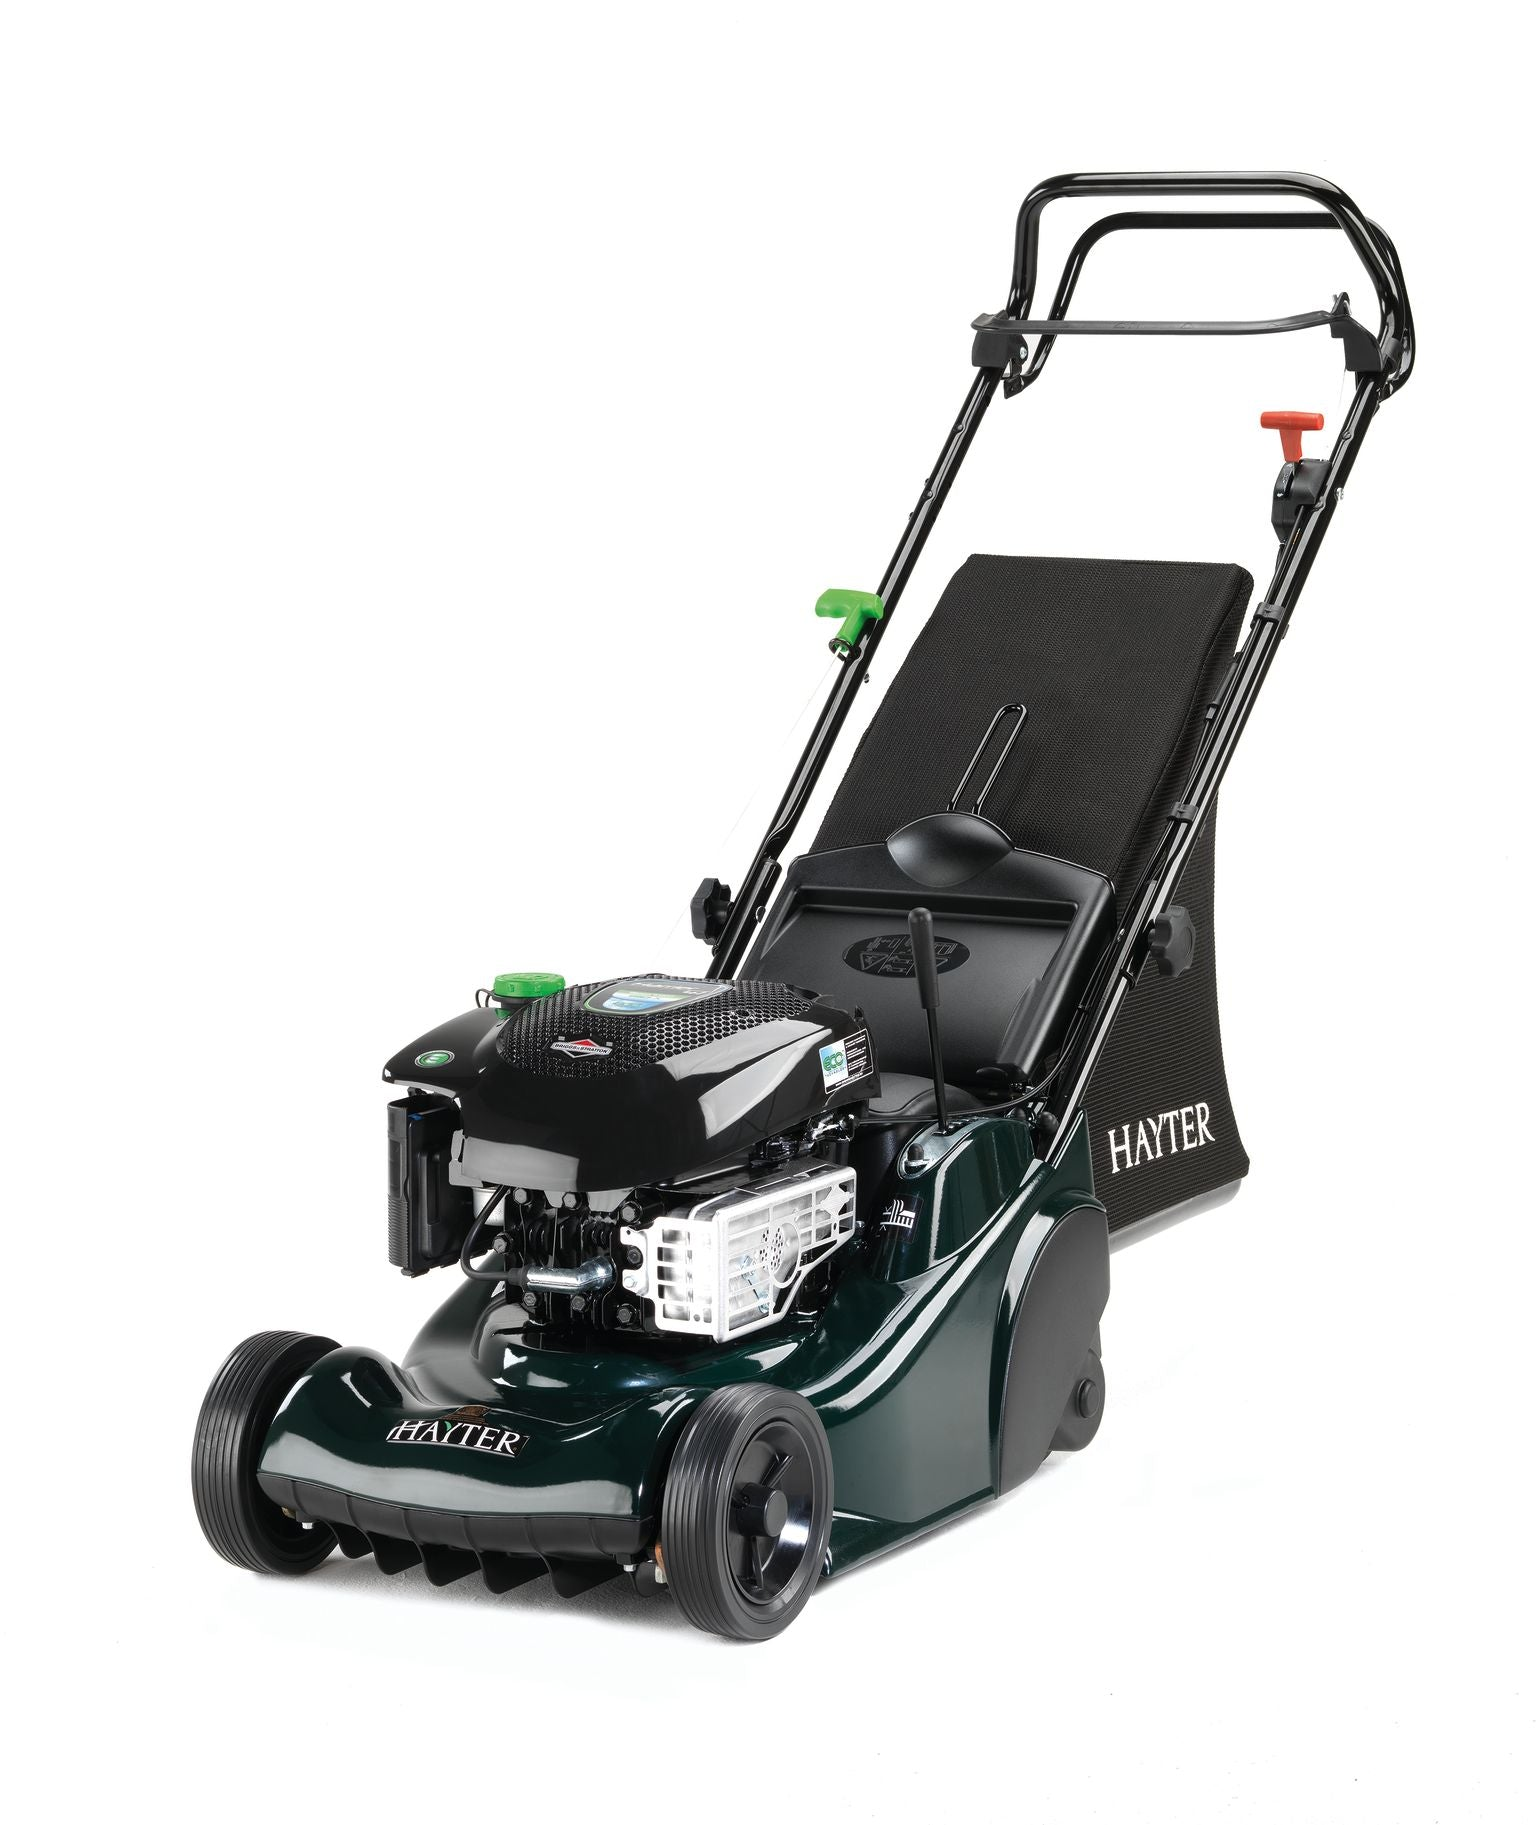 Hayter Harrier 41 cm Roller Driven Lawnmower With Variable Speed & Electric Start